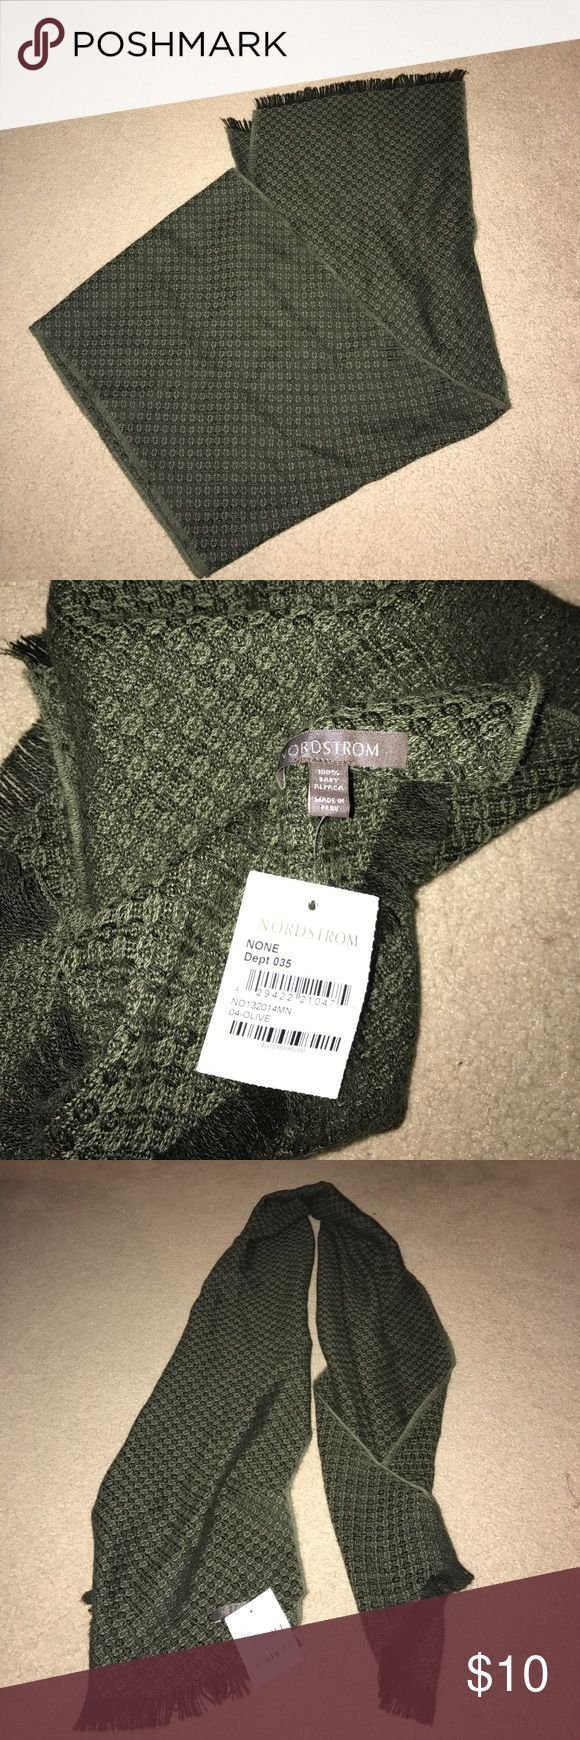 NWT Nordstrom scarf Color: olive very soft. 100% baby alpaca Nordstrom Accessories Scarves & Wraps